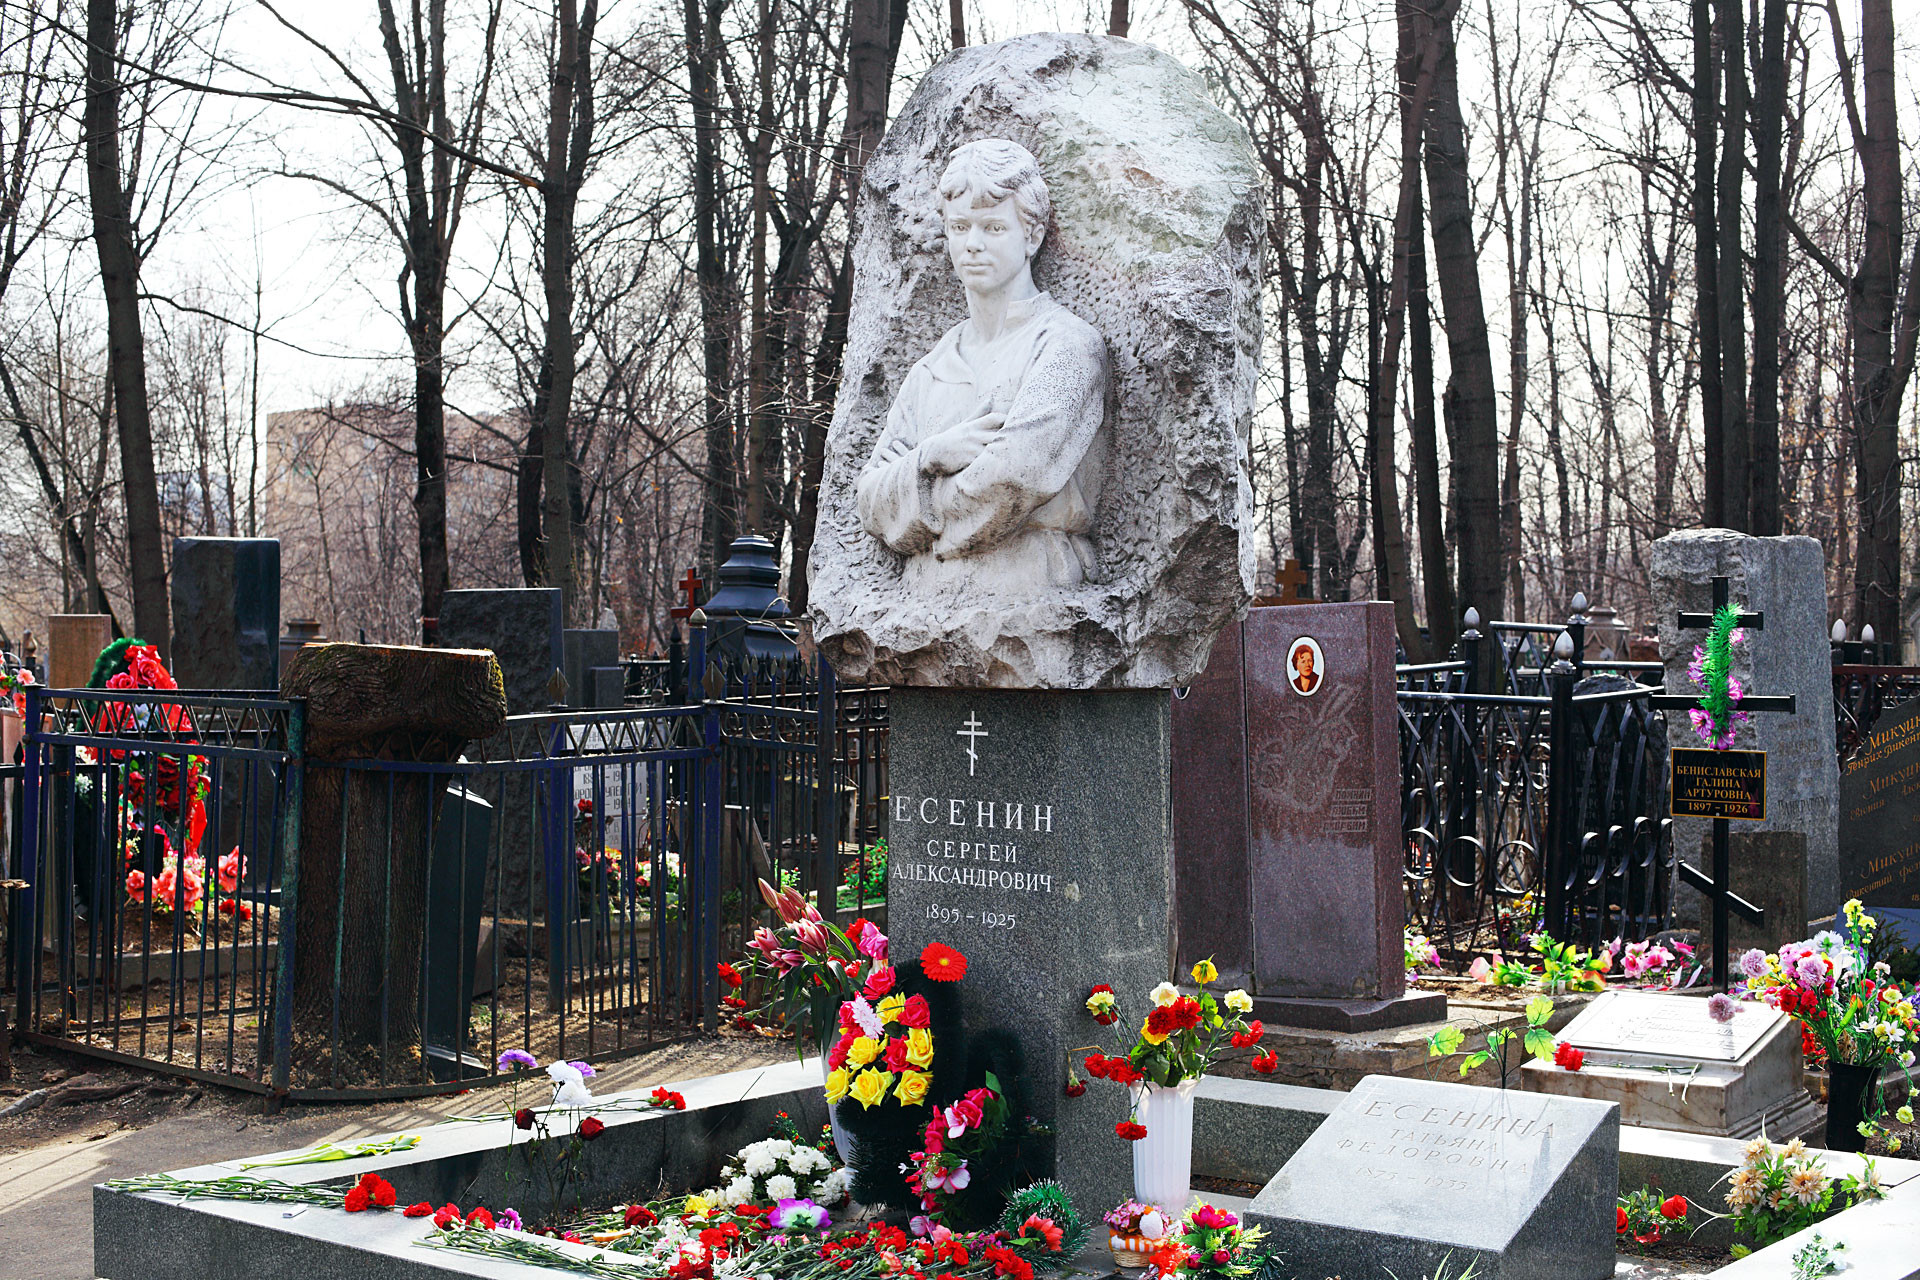 Sergey Yesenin's tombstone at Vagankovskoye cemetery, Moscow, Russia. Black cross with a green-and-purple wreath on the left side is on Galina Benislavskaya's grave.